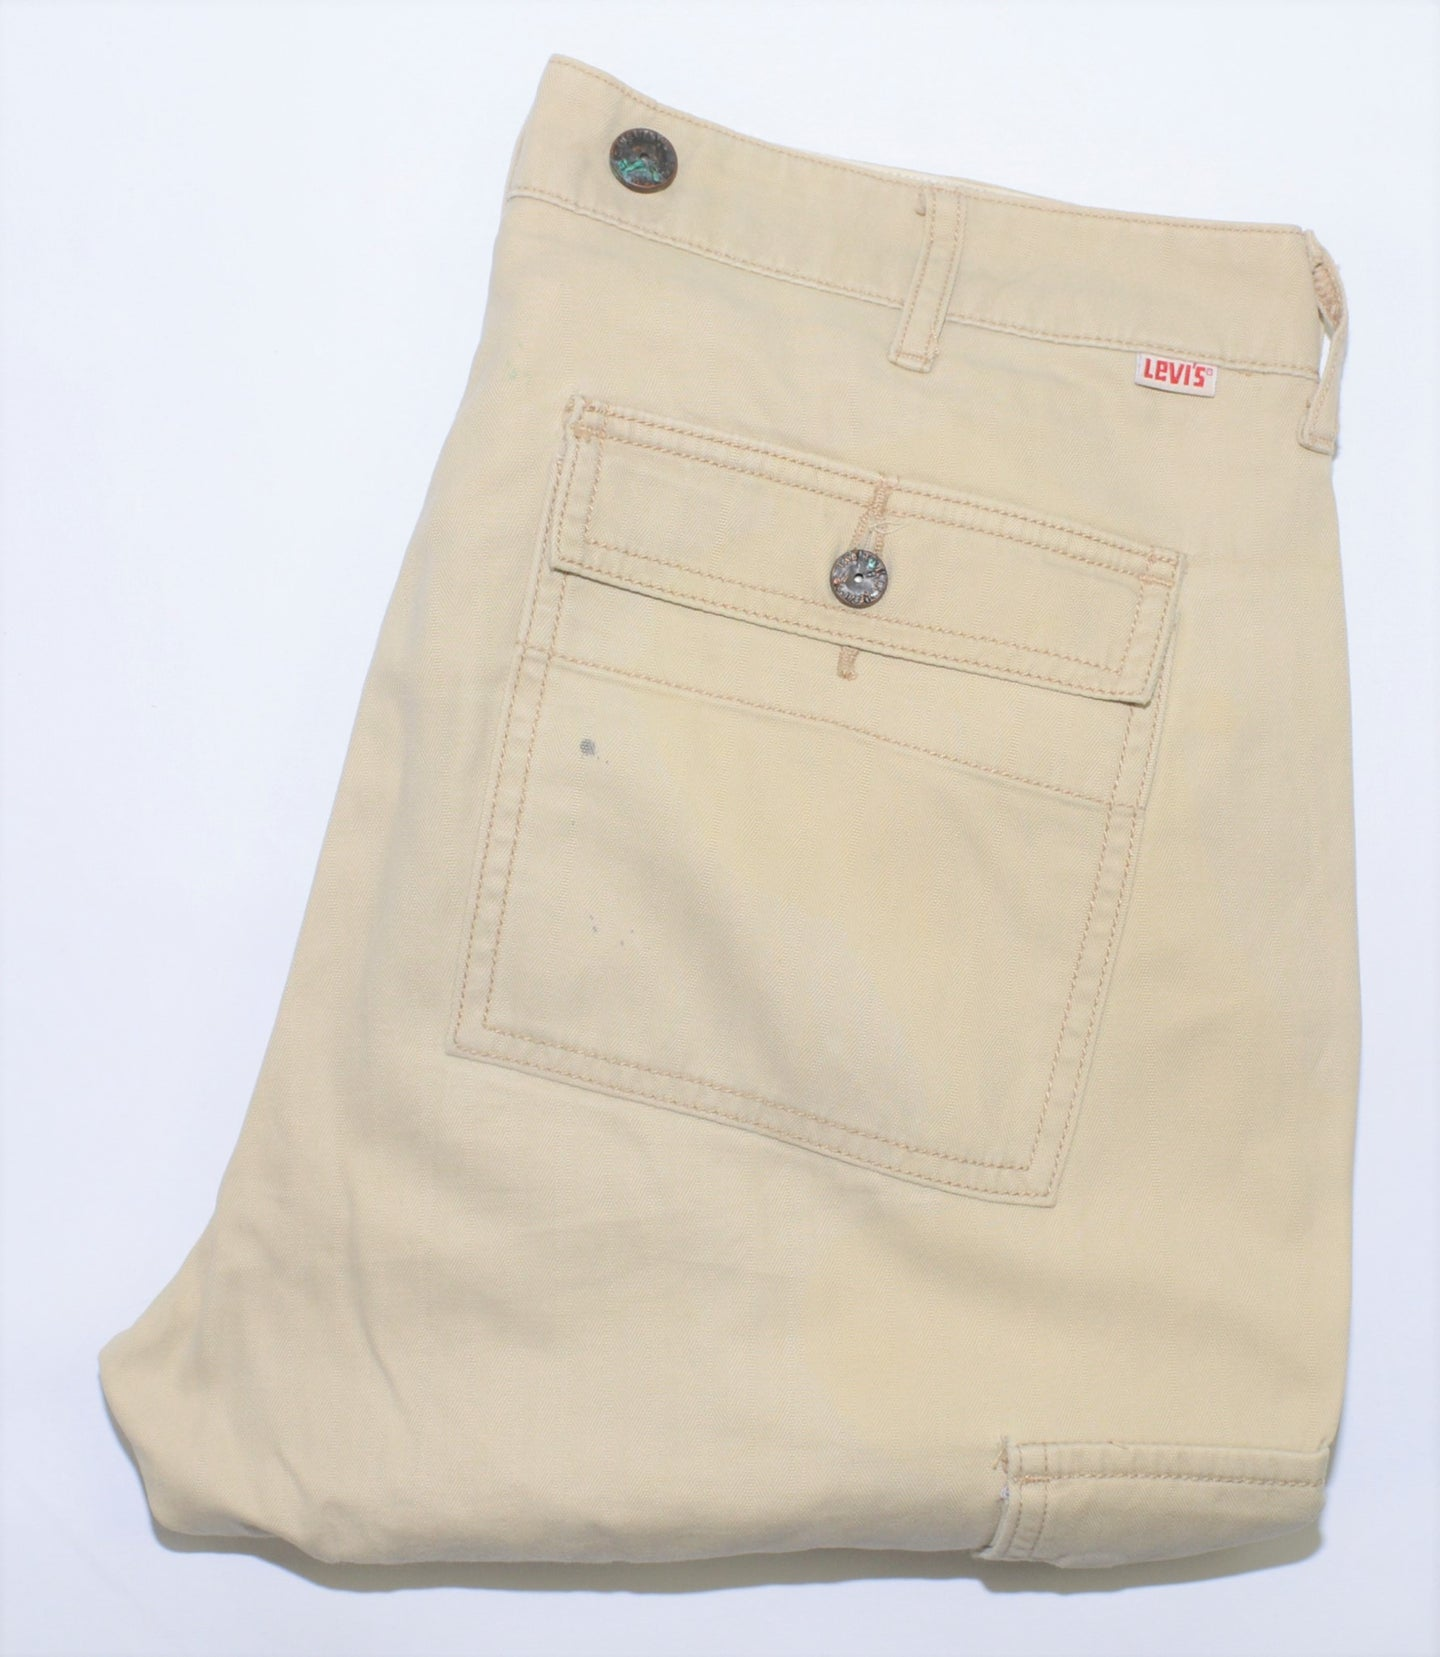 Levi's - Tap Twills - Herringbone Fatigue - Size 32/29